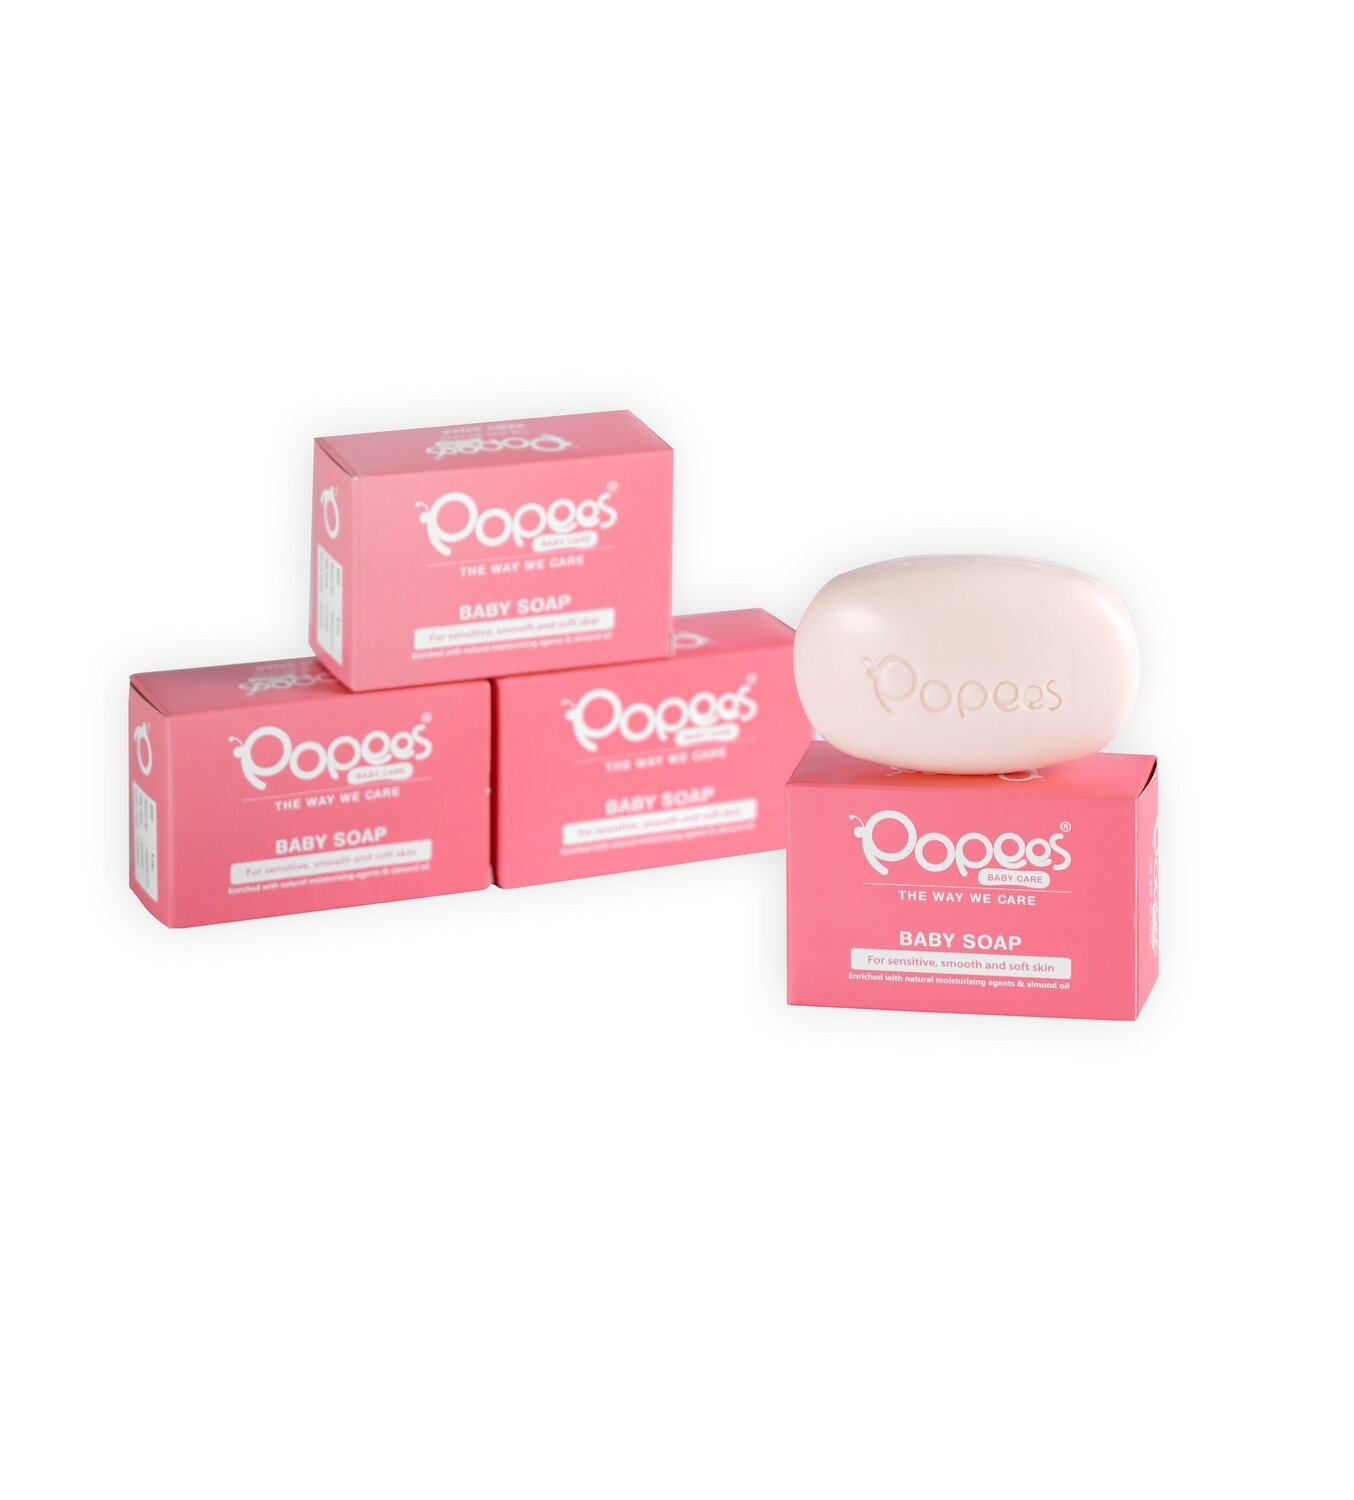 Popees  Pack of 3 Moisturizing Baby Soaps - BUY 2 GET 1 FREE